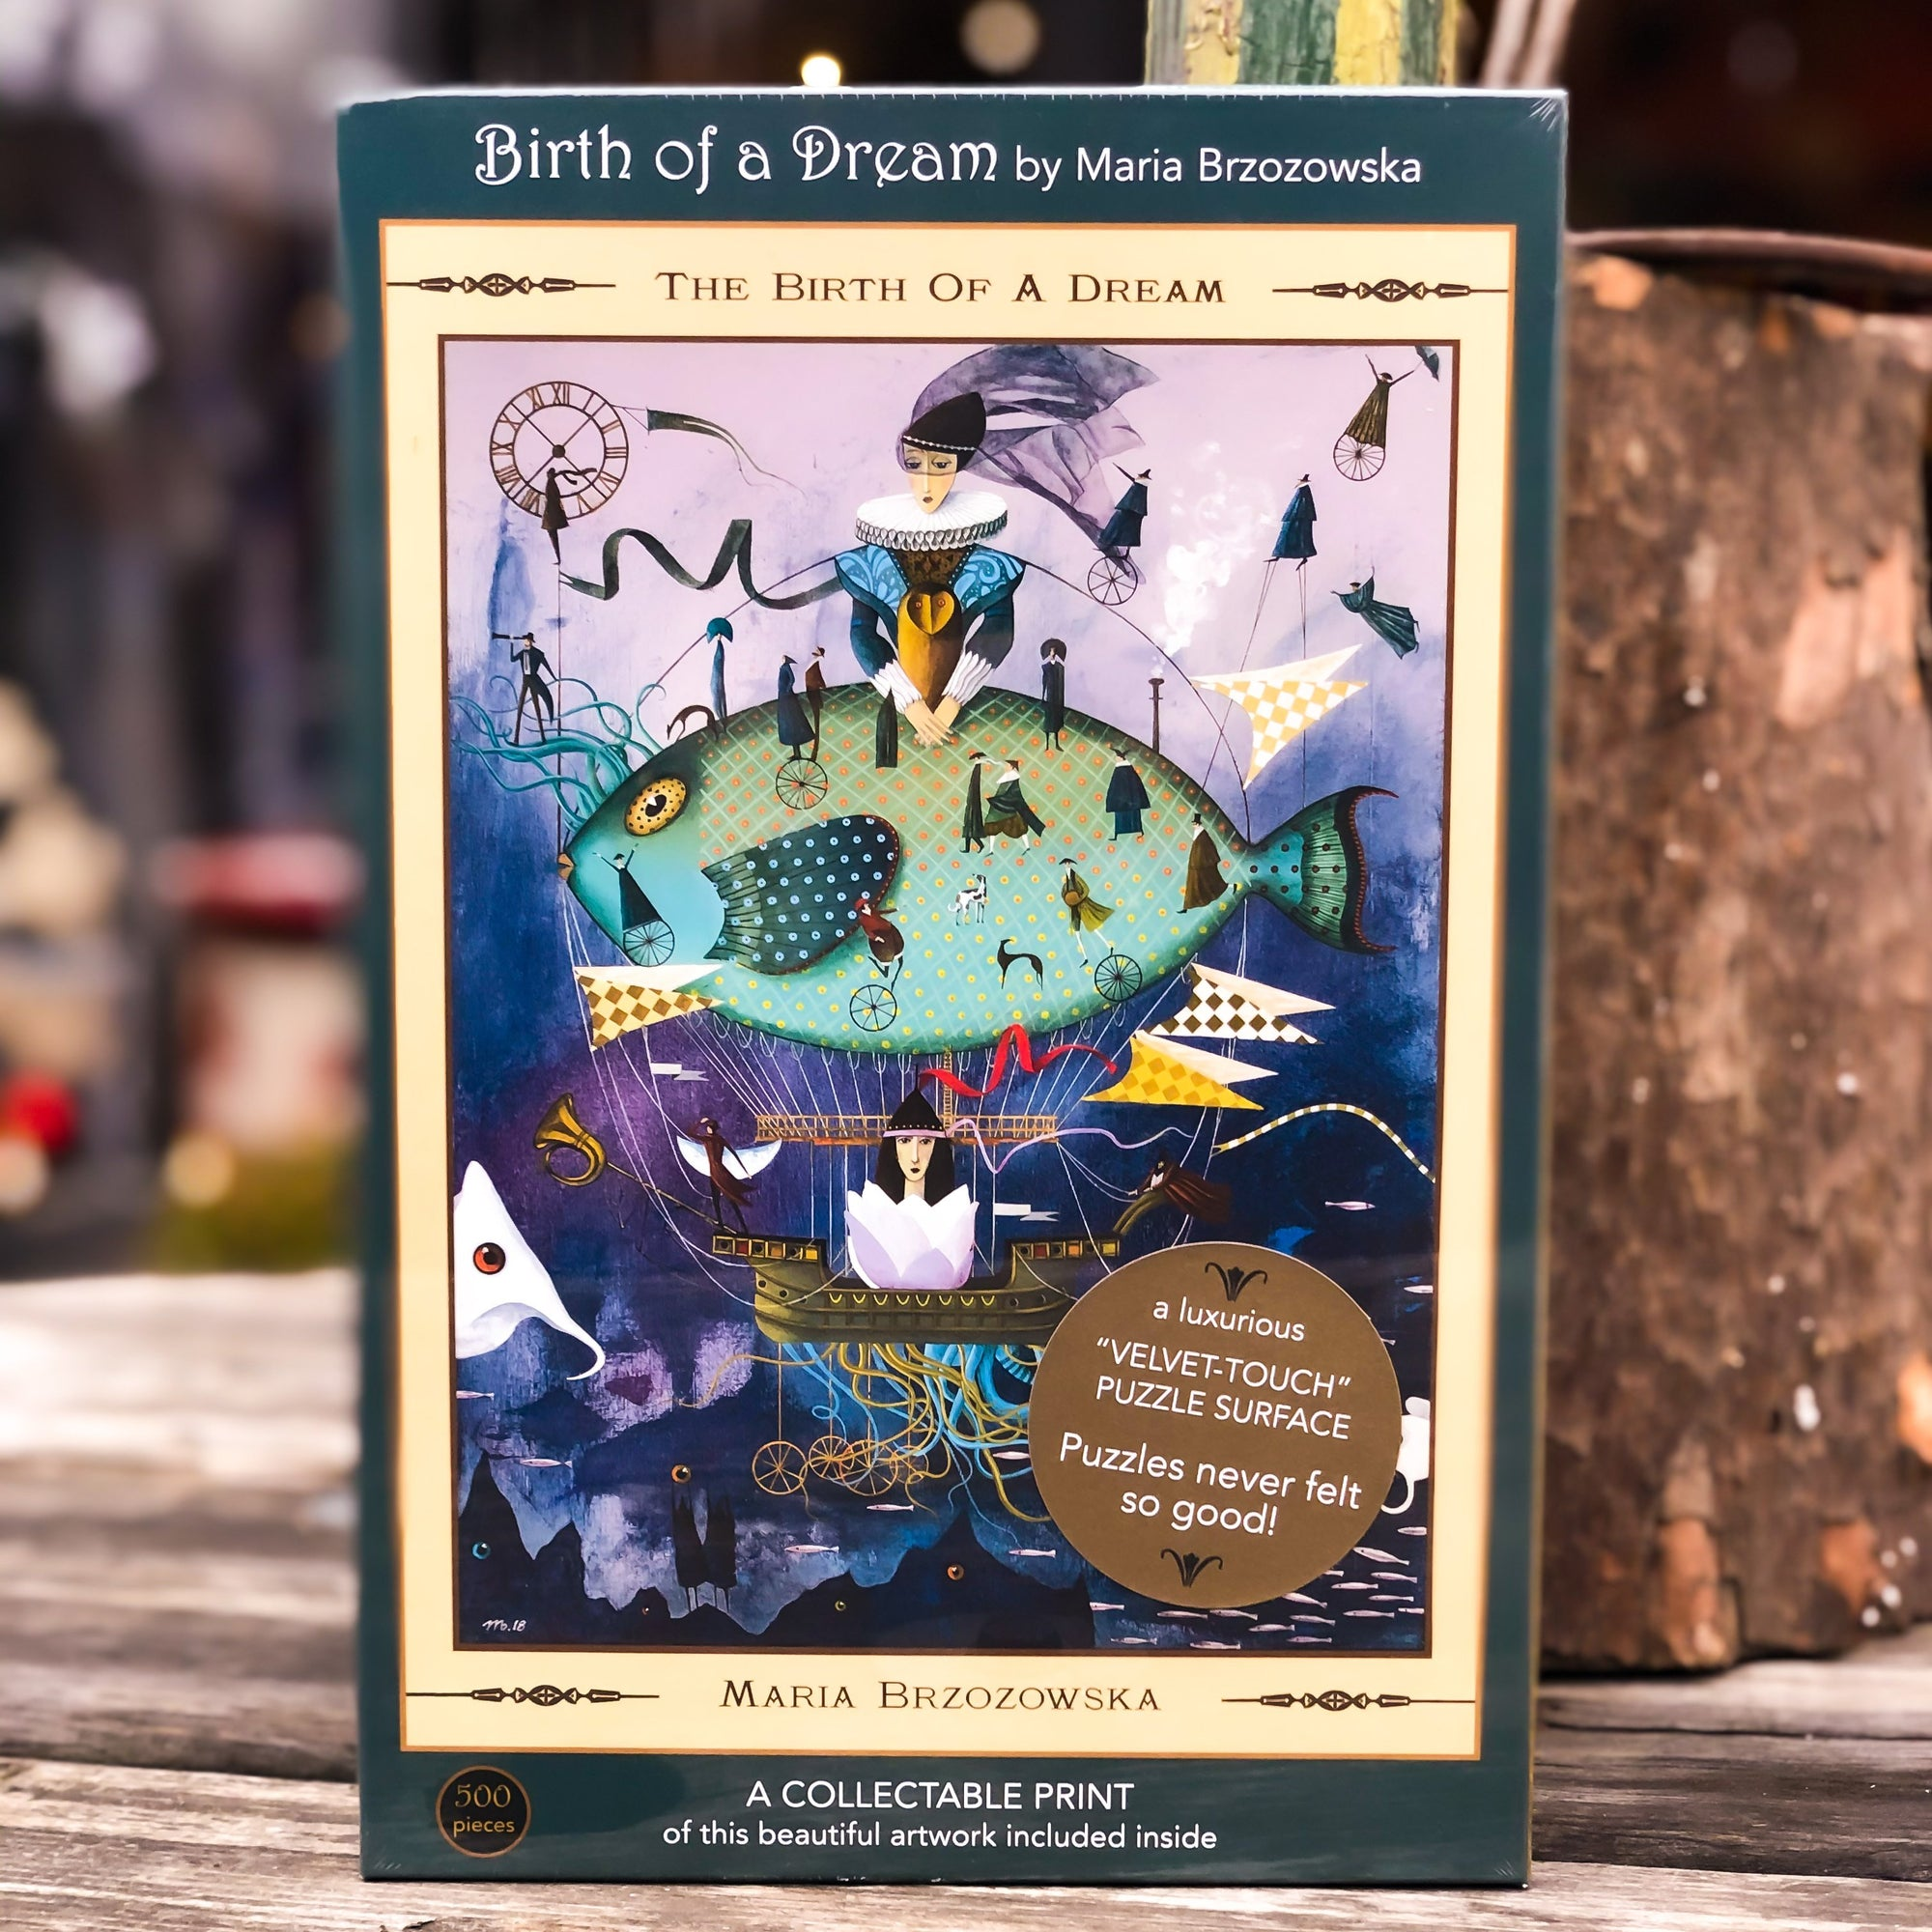 Buy Birth of a Dream 500 Piece Jigsaw Puzzle from Walking Pants Curiosities, the Most un-General Gift Store in Downtown Memphis, Tennessee!